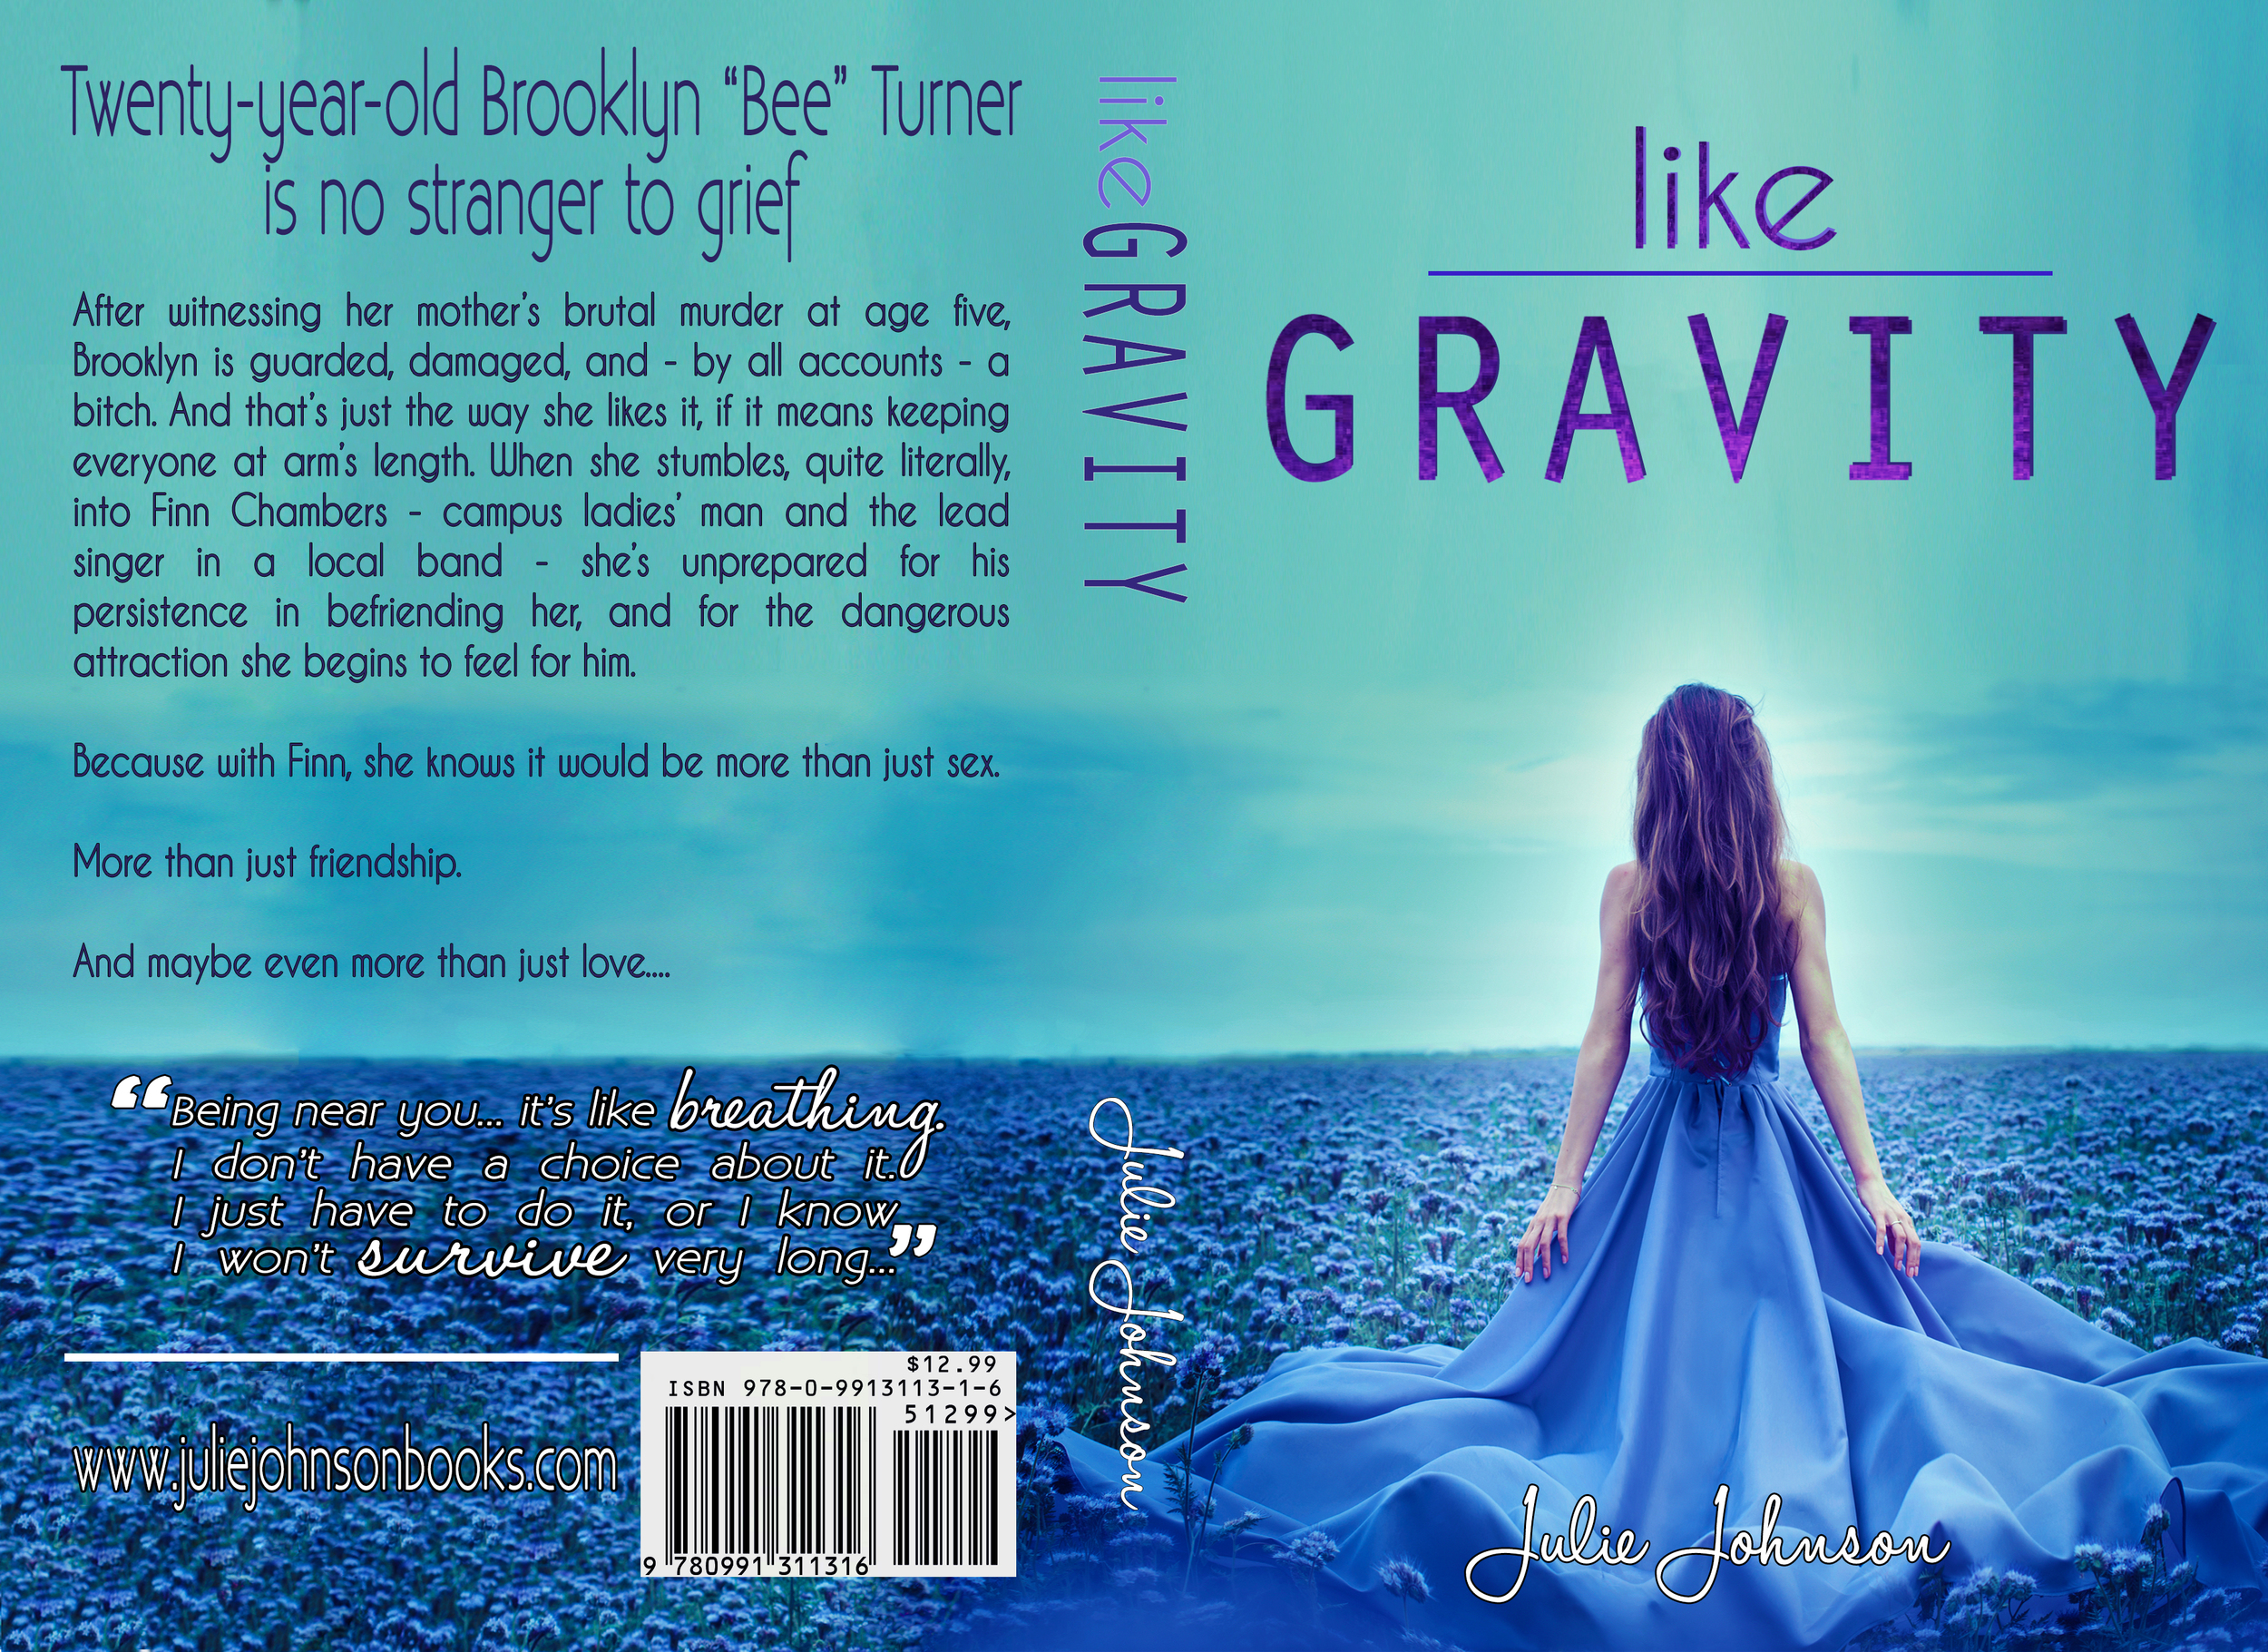 Like Gravity full book cover